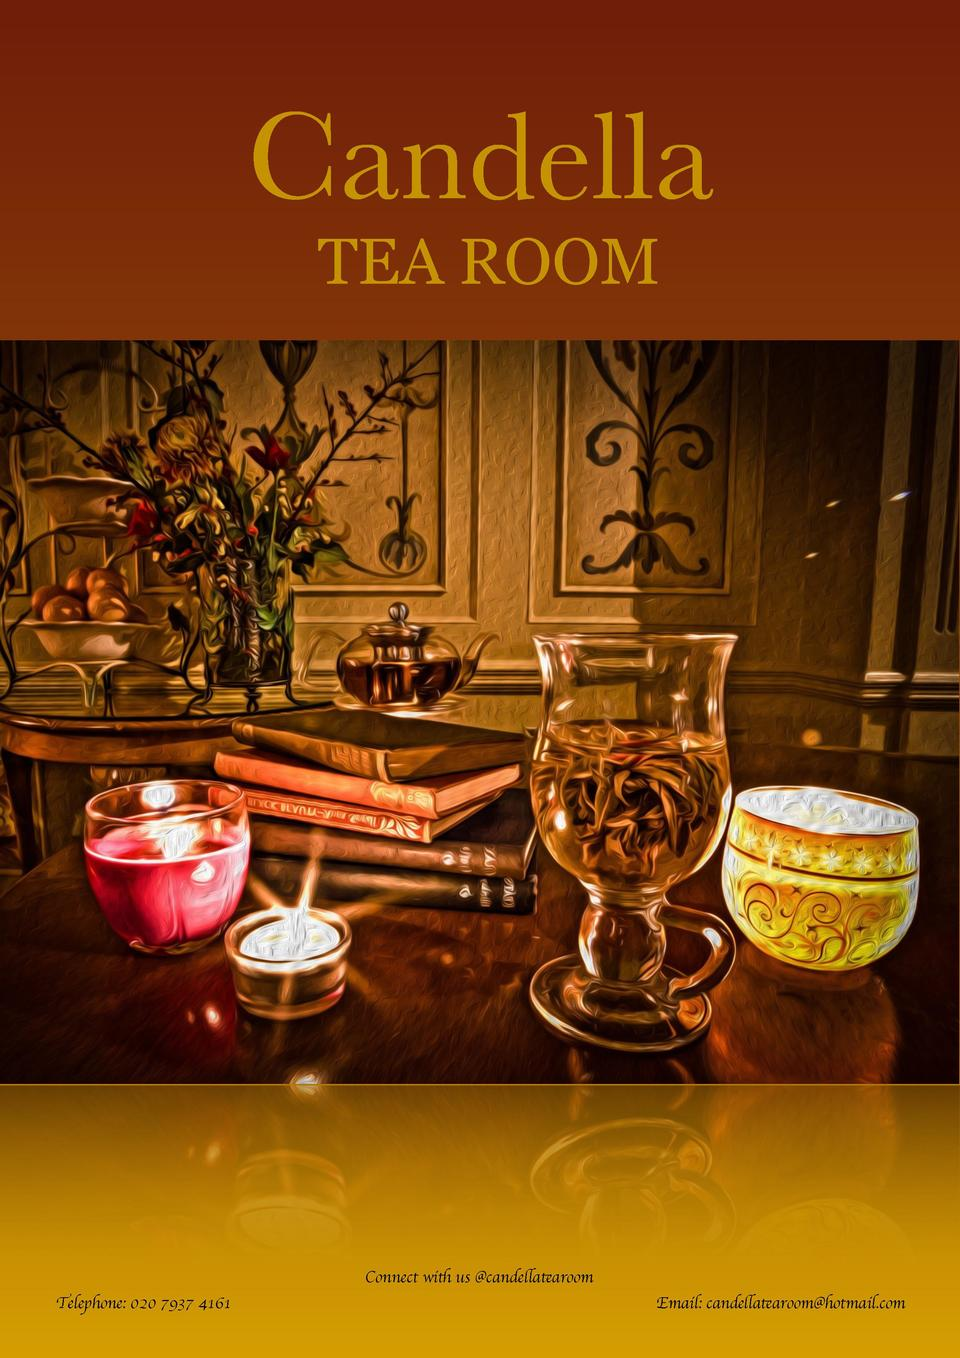 Candella TEA ROOM  Connect with us  candellatearoom Telephone  020 7937 4161  Email  candellatearoom hotmail.com